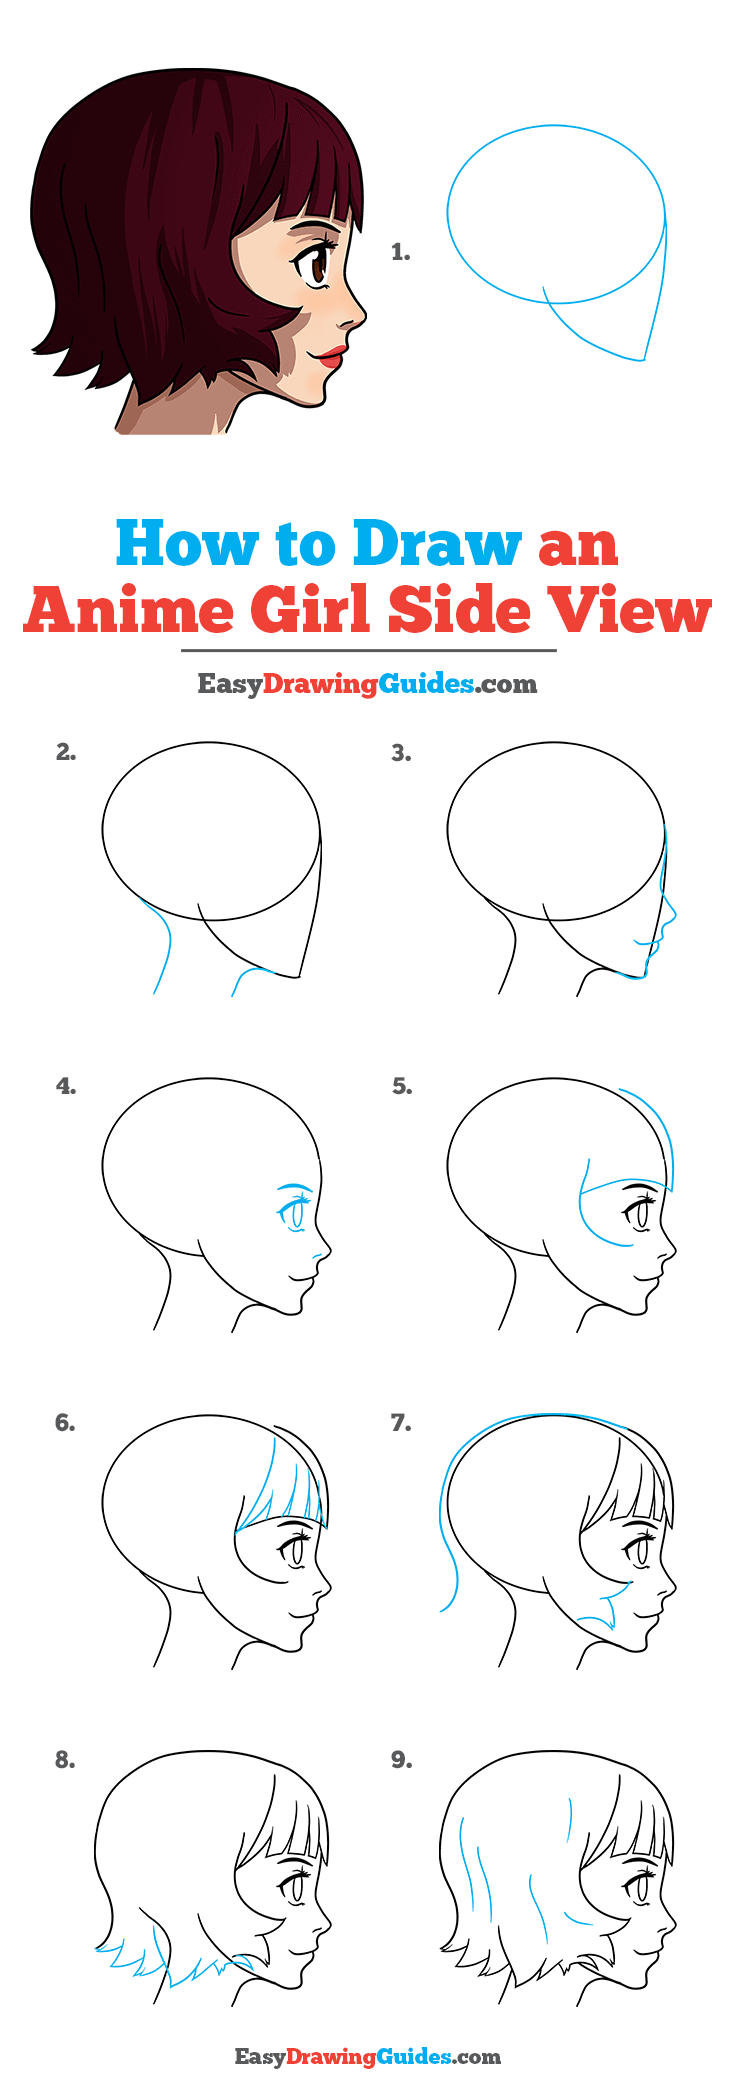 How to Draw Anime Girl Side View